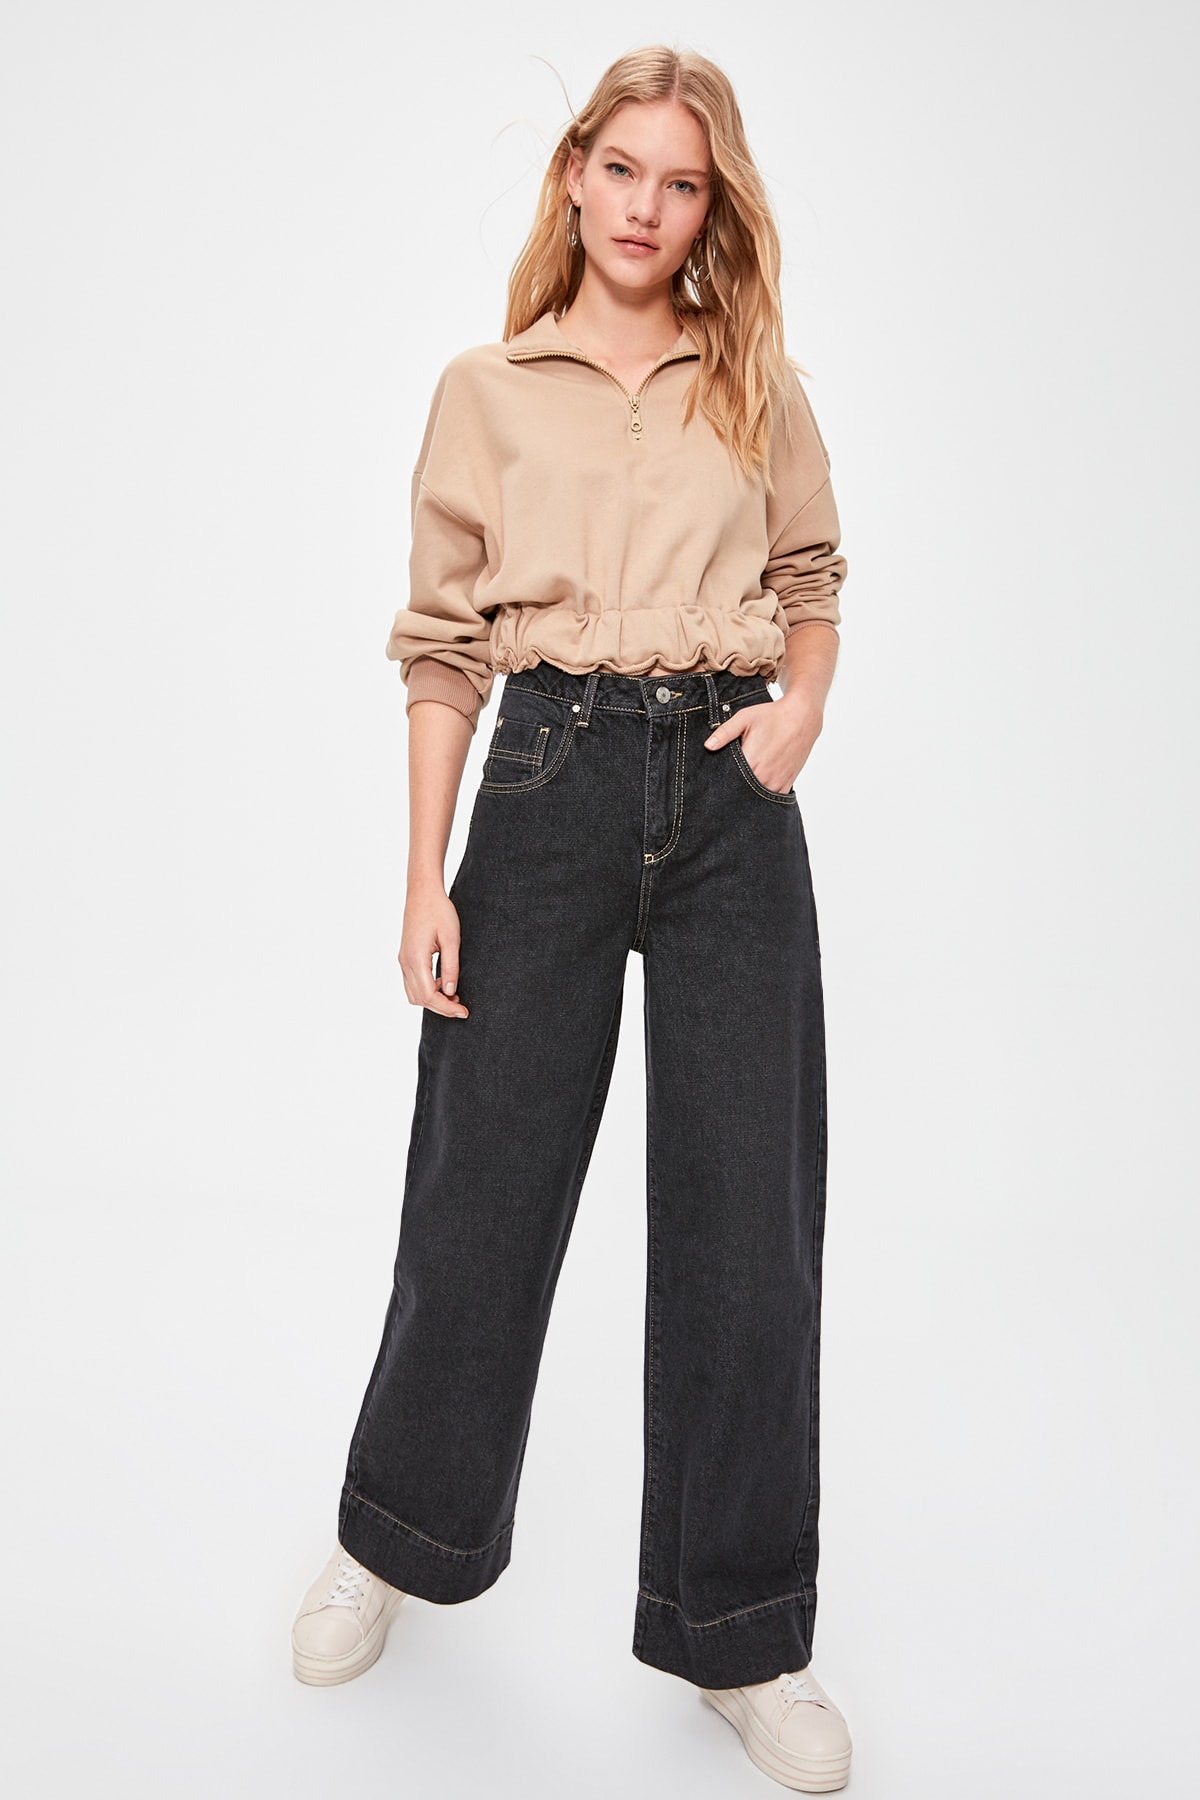 Trendyol Stitch Detail High Bel Wide Leg Jeans TWOAW20JE0332